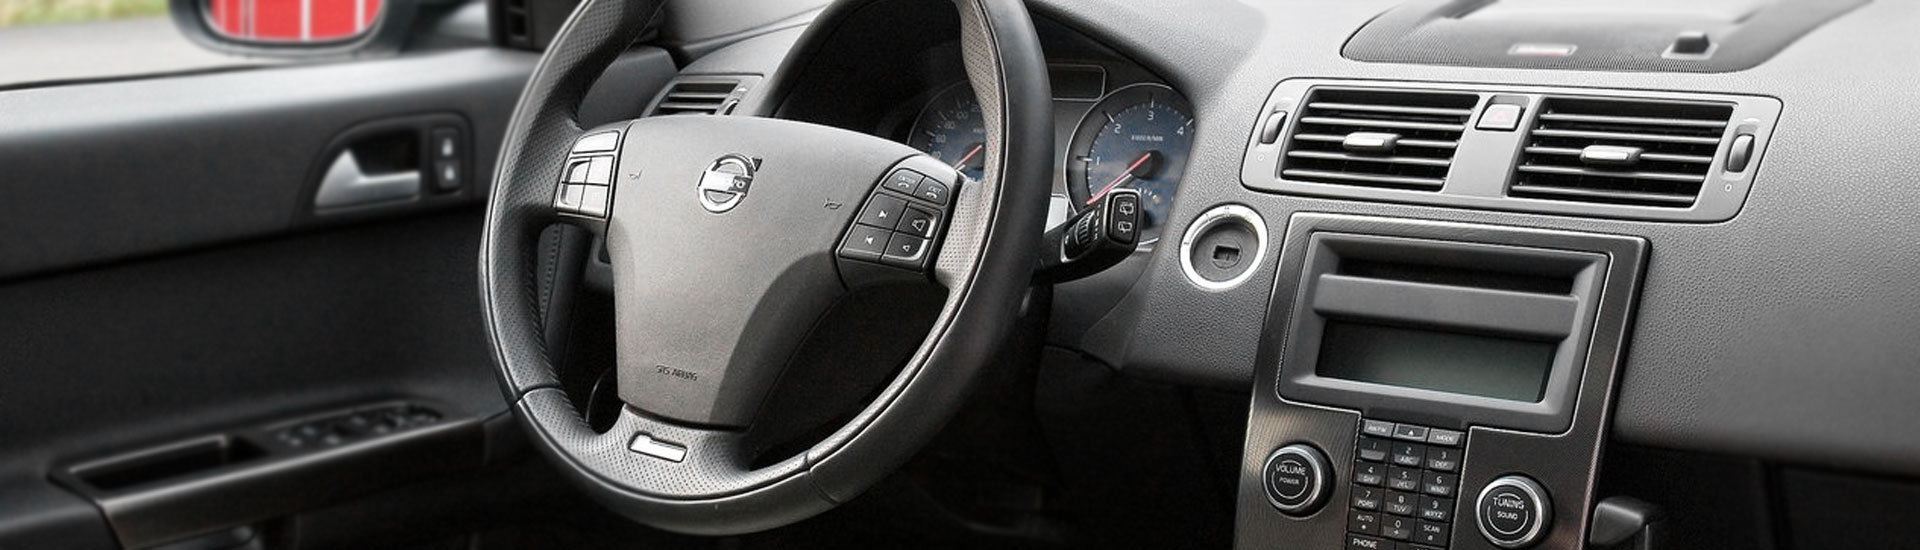 Volvo V50 Custom Dash Kits